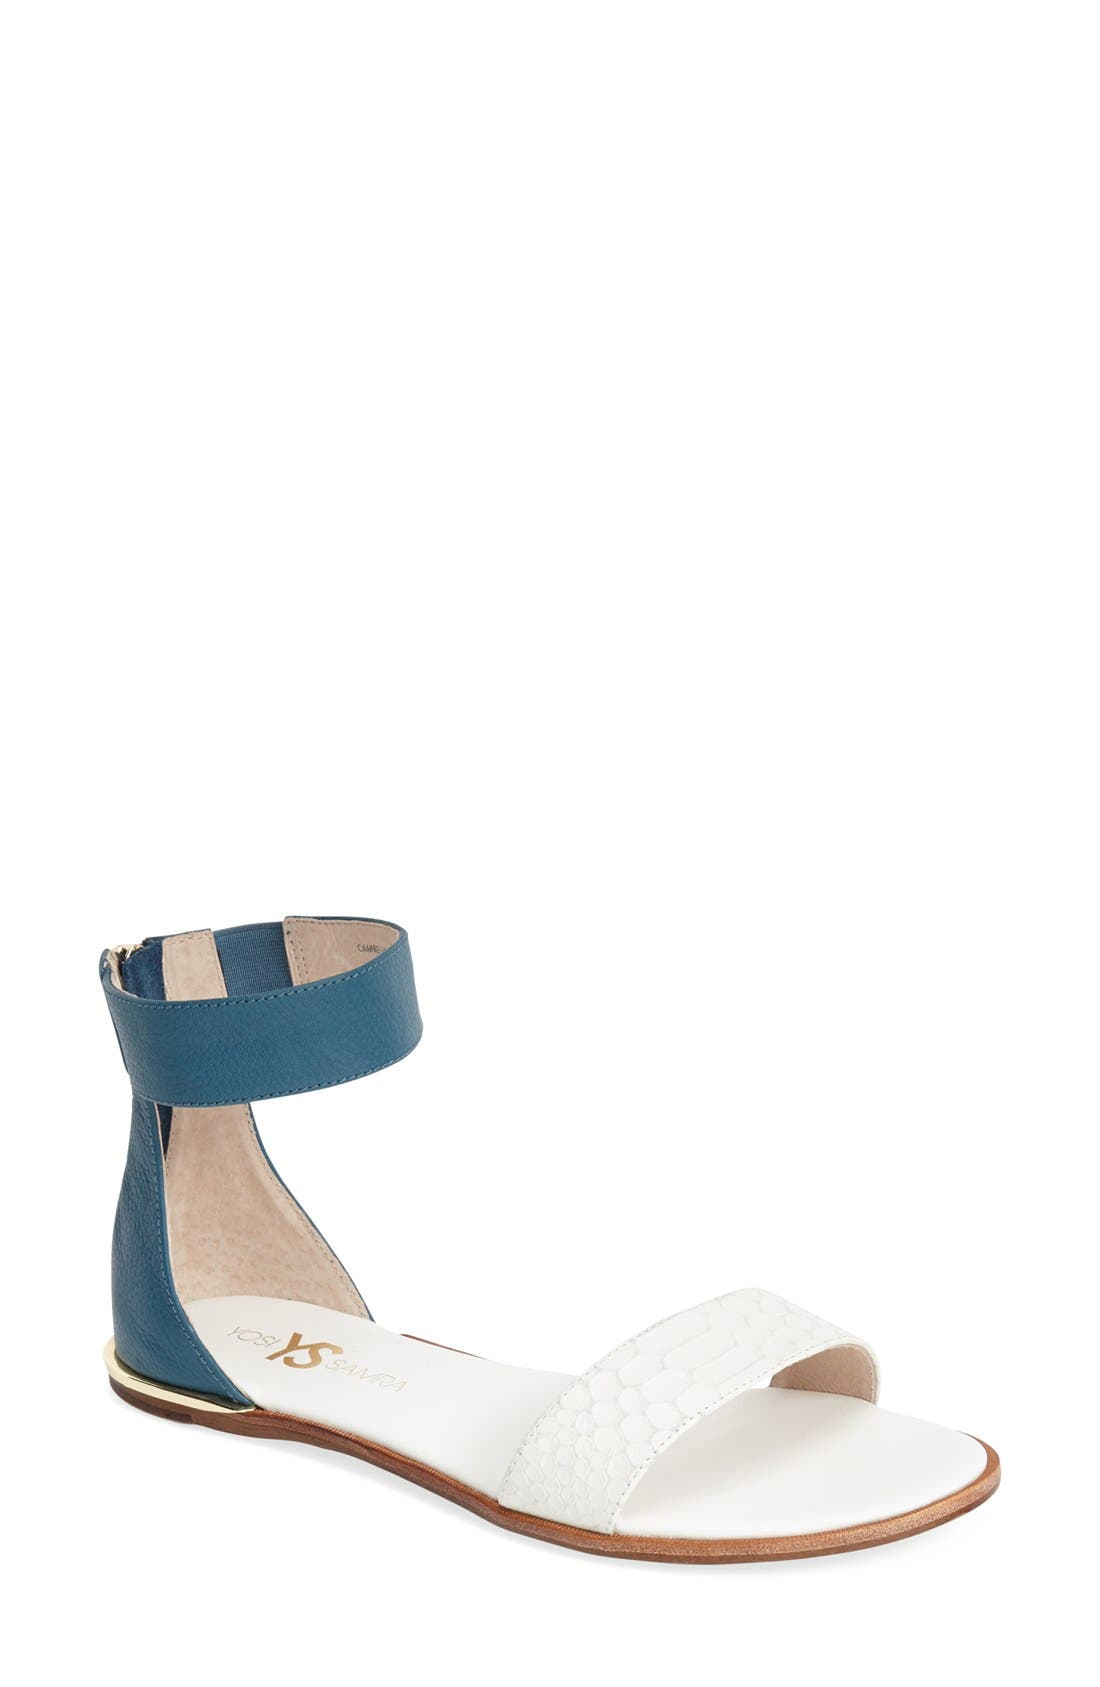 ,                             'Cambelle' Ankle Strap Sandal,                             Main thumbnail 18, color,                             103